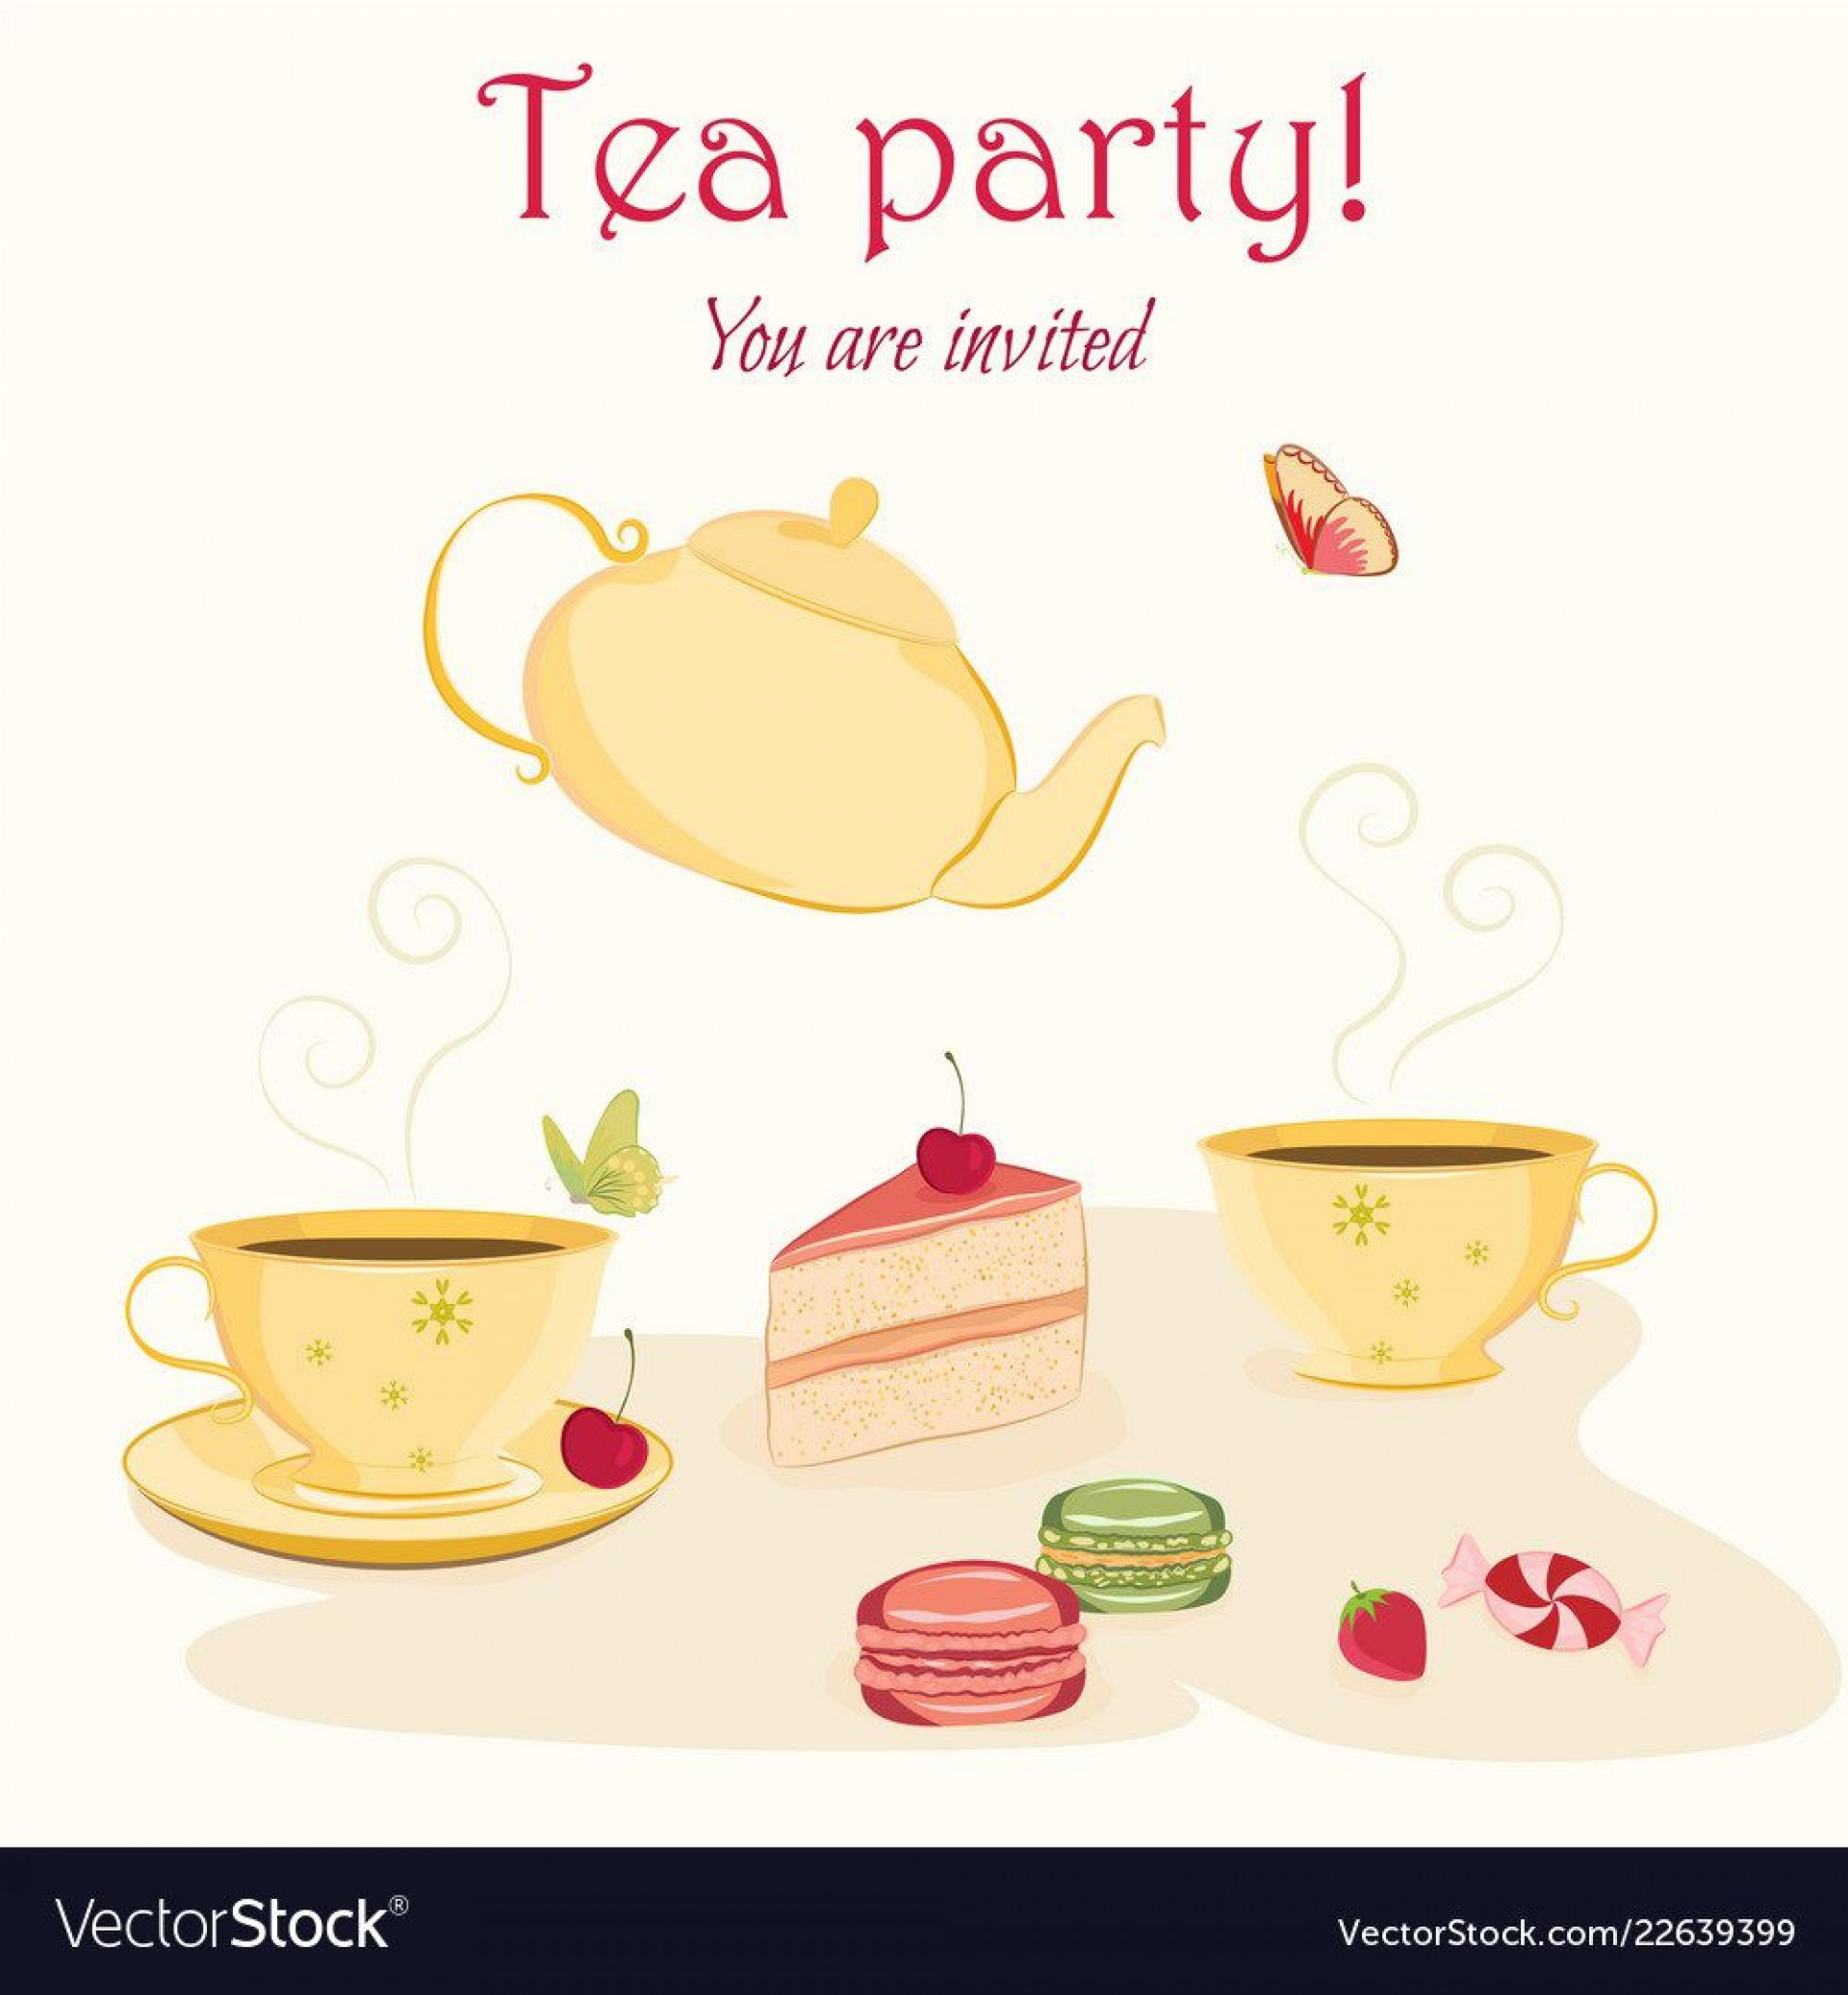 007 Exceptional Tea Party Invitation Template Photo  Online Letter1920